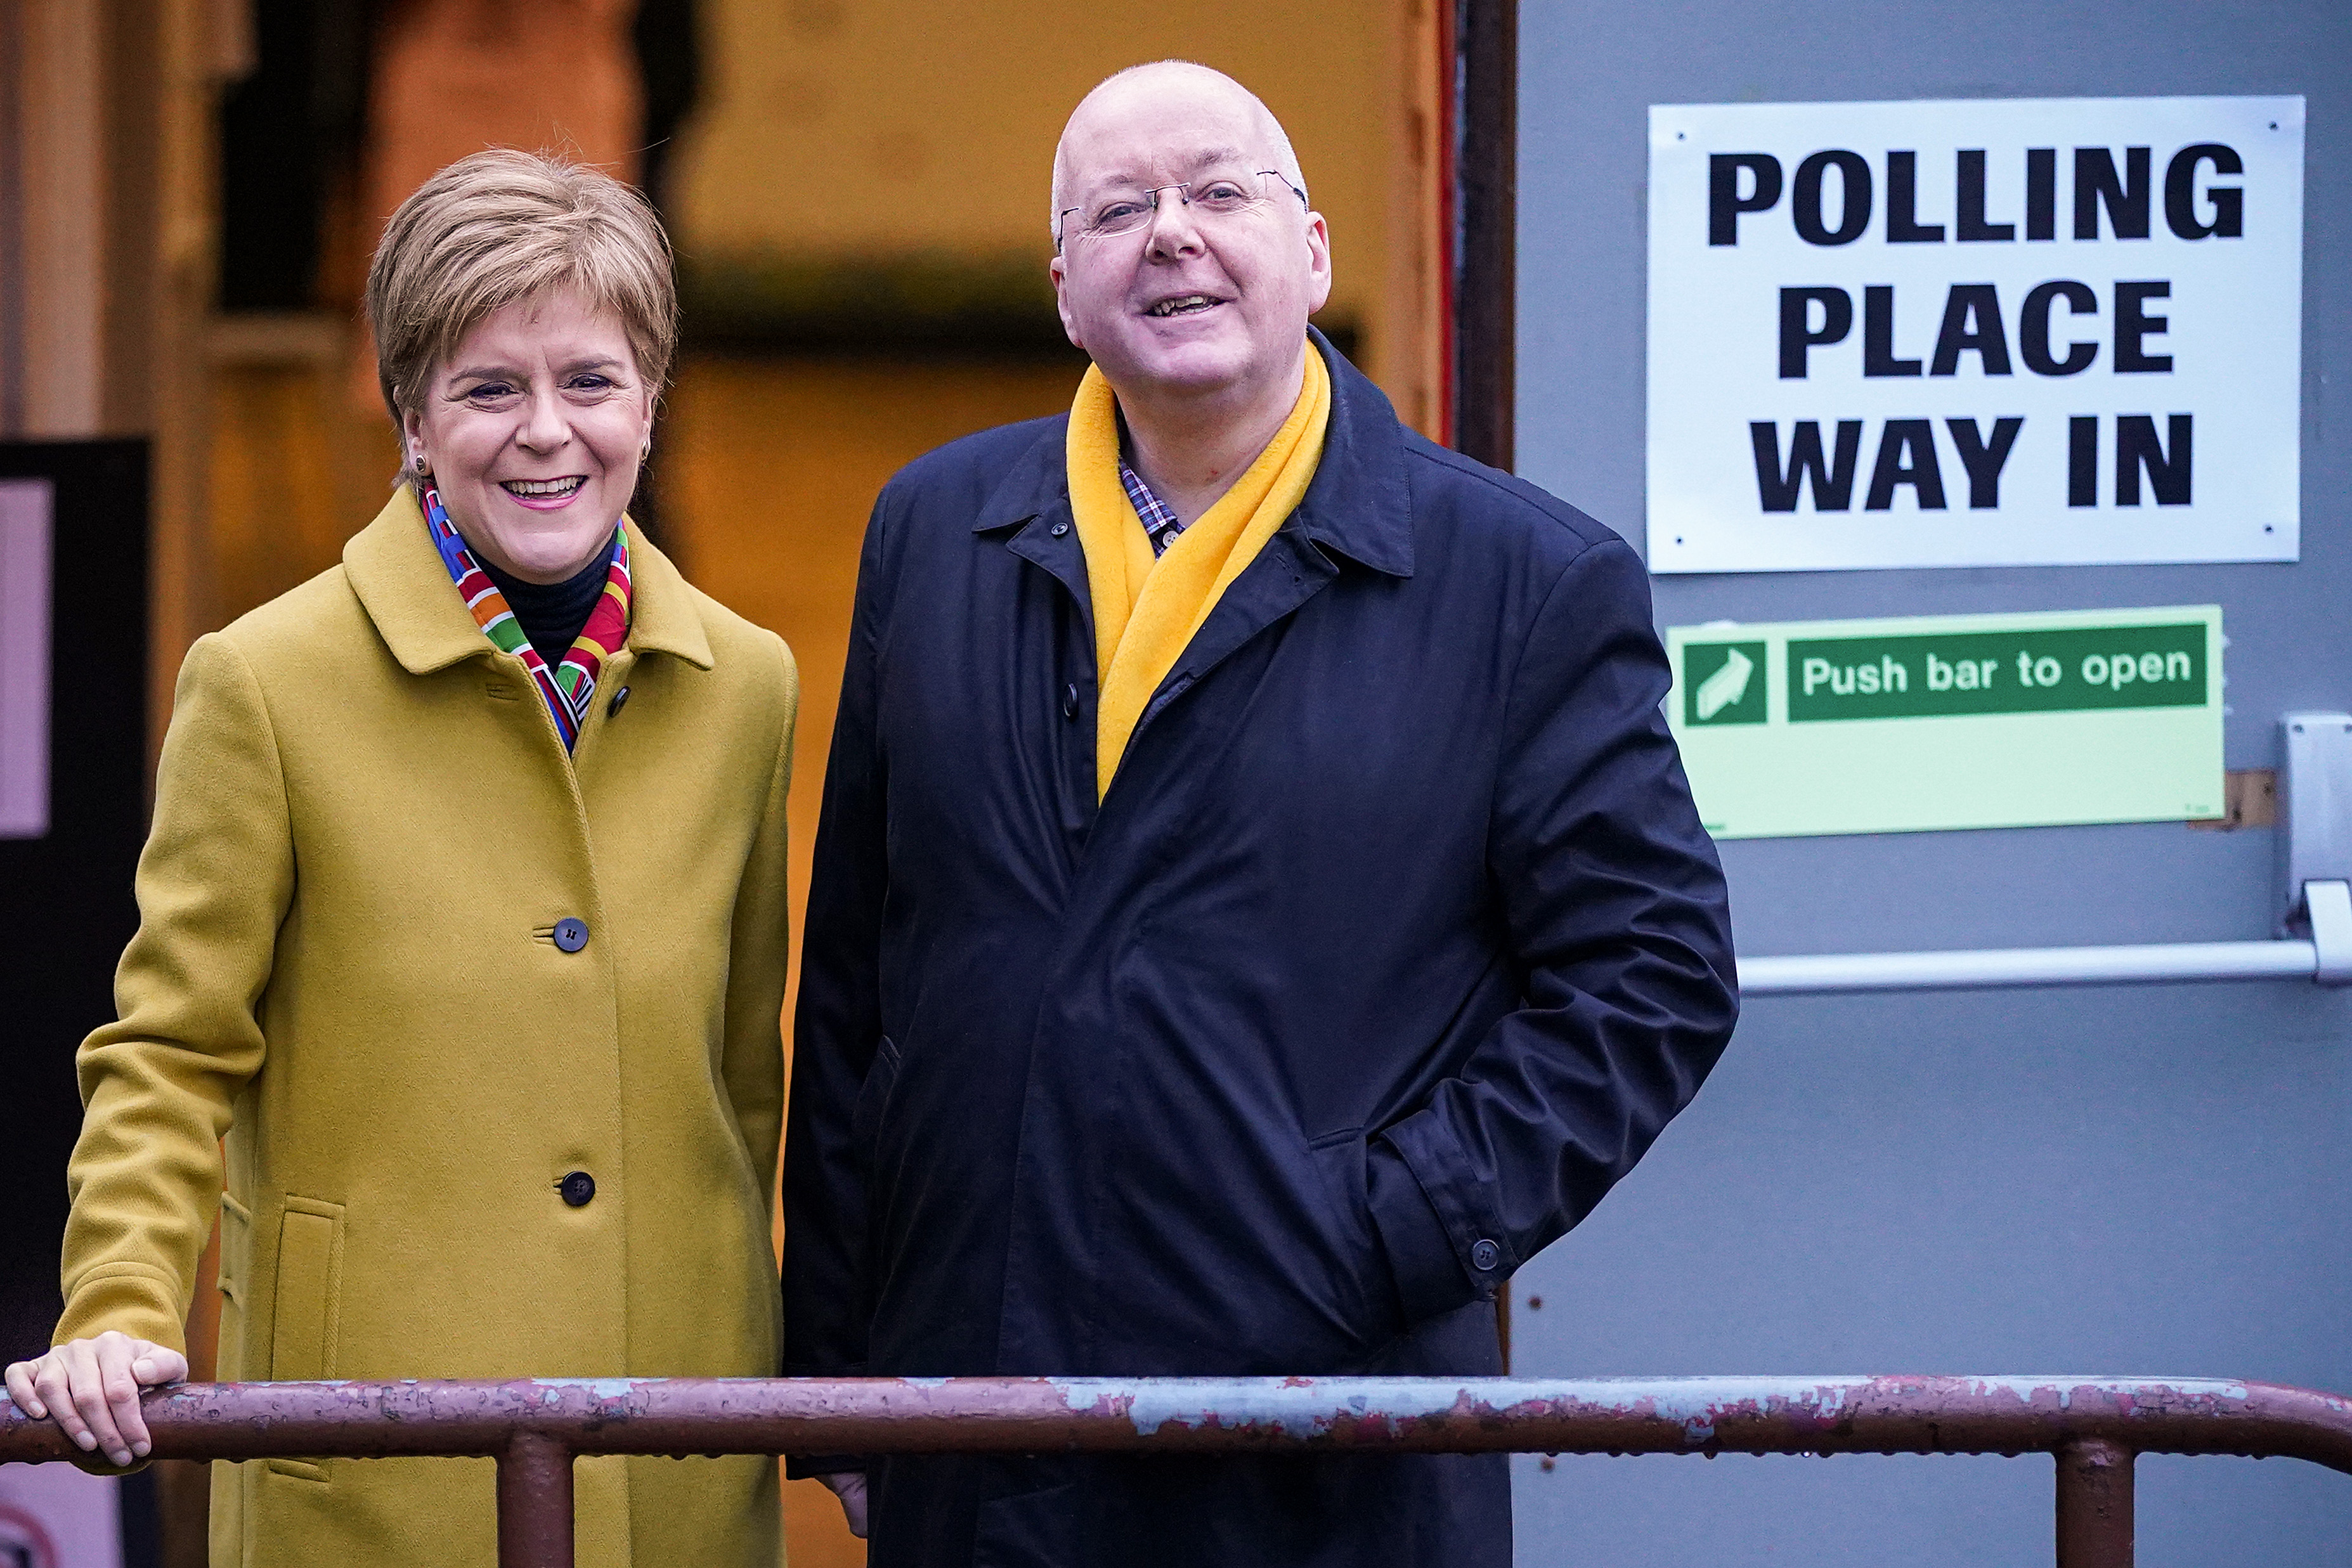 GLASGOW, UNITED KINGDOM - DECEMBER 12: First Minister of Scotland and leader of the SNP Nicola Sturgeon votes with her husband Peter Murrell at Broomhouse Community Hall in Ballieston on December 2019, in Glasgow, Scotland. The current Conservative Prime Minister Boris Johnson called the first UK winter election for nearly a century in an attempt to gain a working majority to break the parliamentary deadlock over Brexit. The election results from across the country are being counted overnight and an overall result is expected in the early hours of Friday morning. (Photo by Jeff J Mitchell/Getty Images)